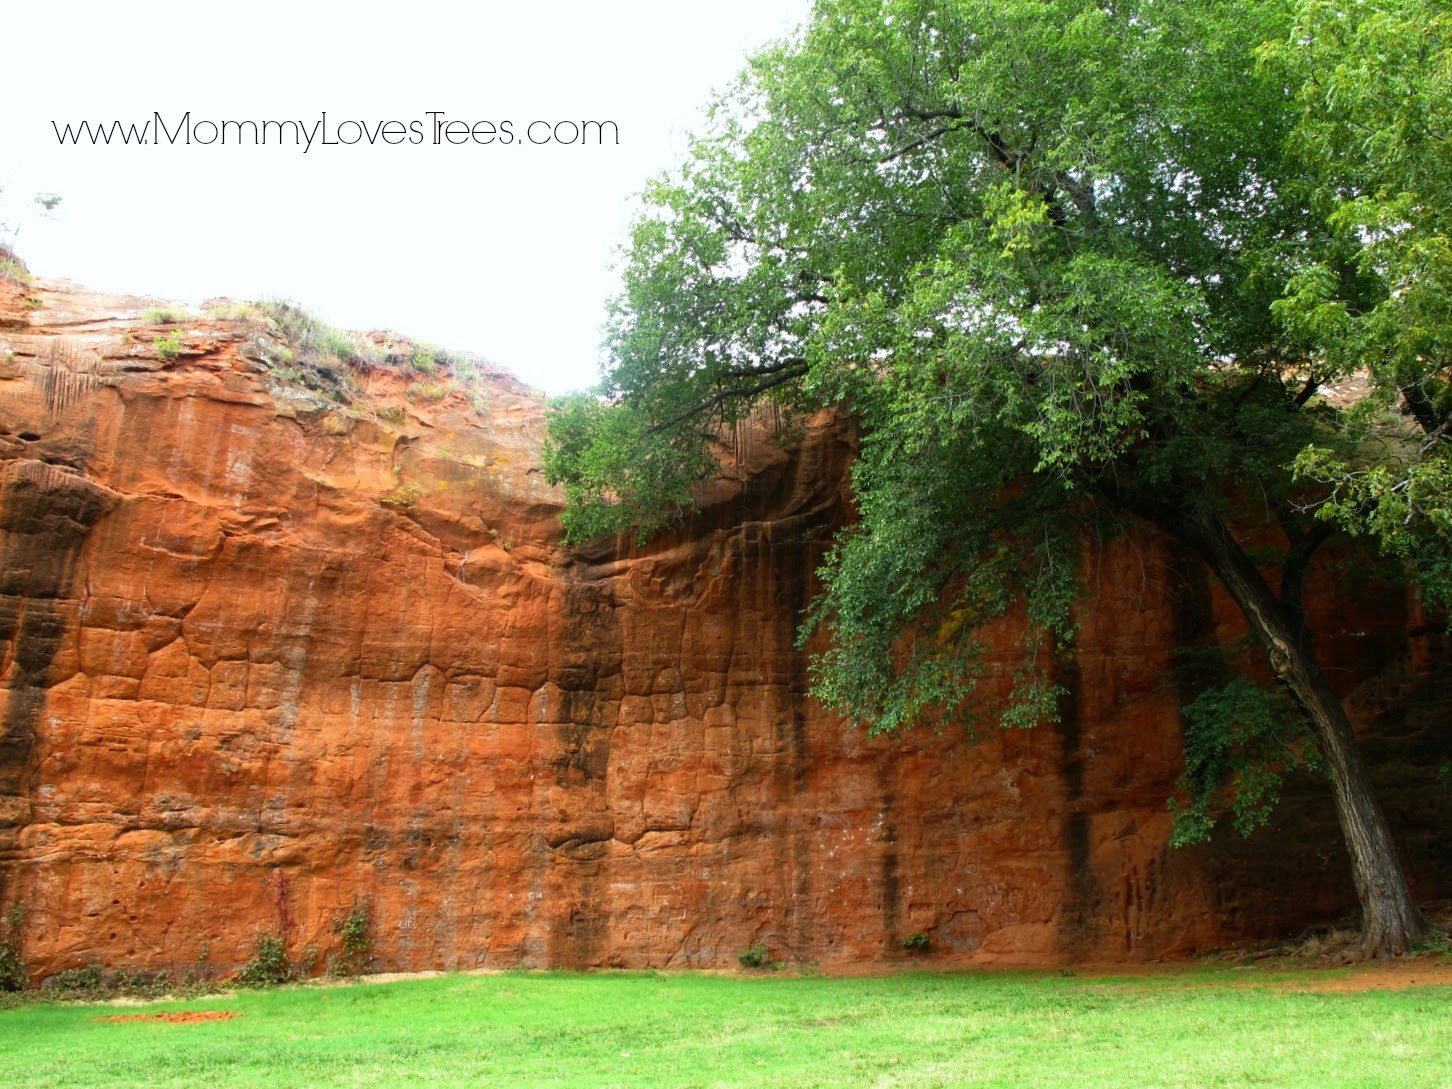 Adventure-Filled Day Trips from Oklahoma City